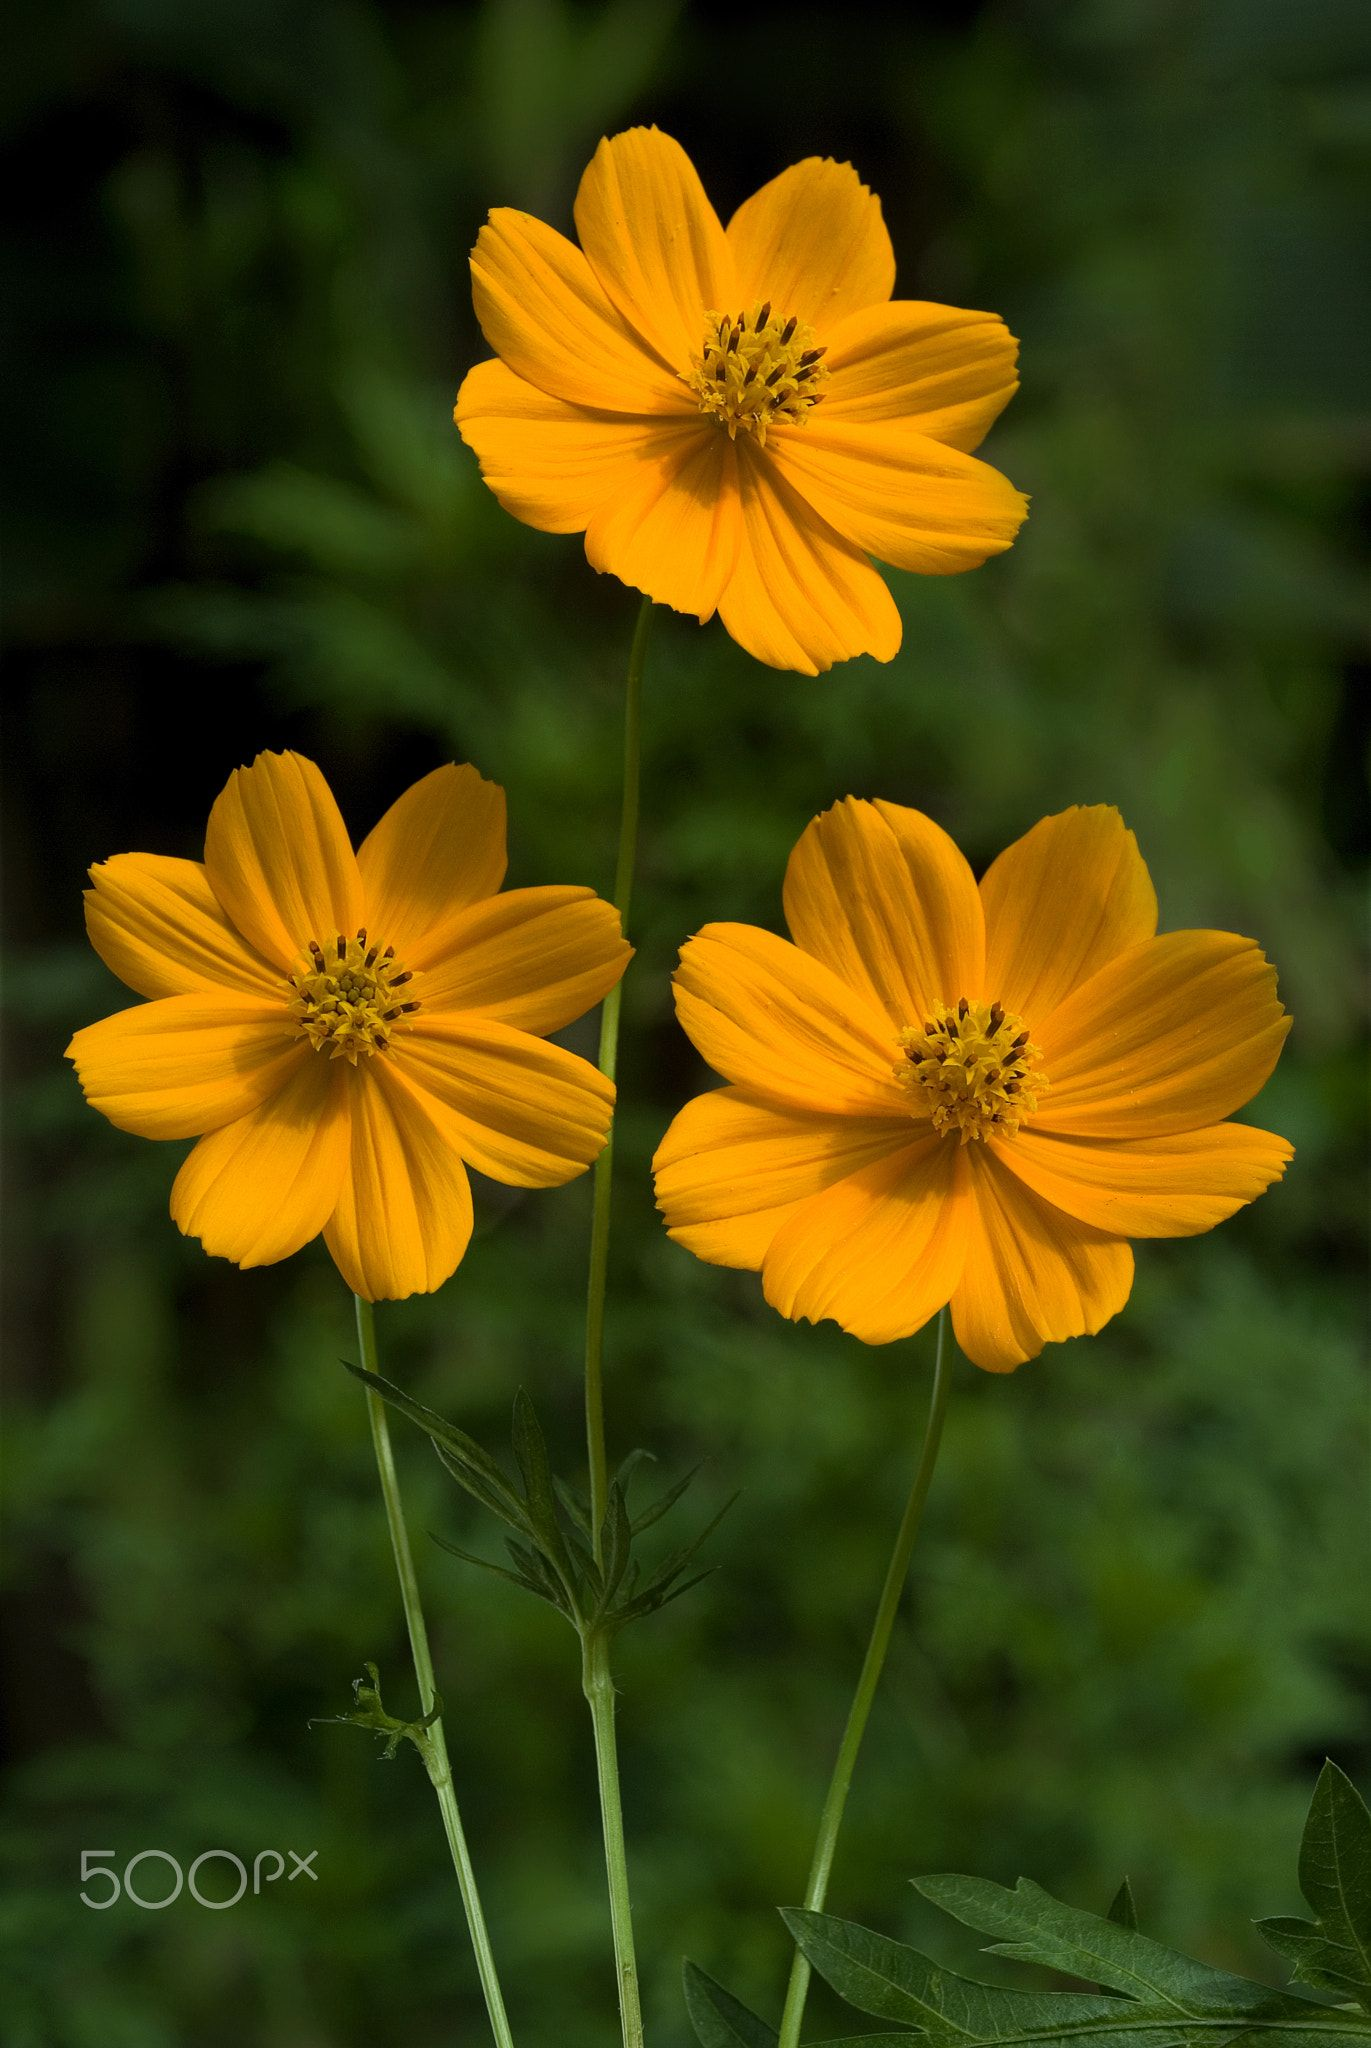 Flowers cosmos yellow flowers three cosmos flowers cosmos flowers cosmos yellow flowers three cosmos flowers cosmos bipinnatus commonly called the garden cosmos or mexican aster is a medium sized flowering mightylinksfo